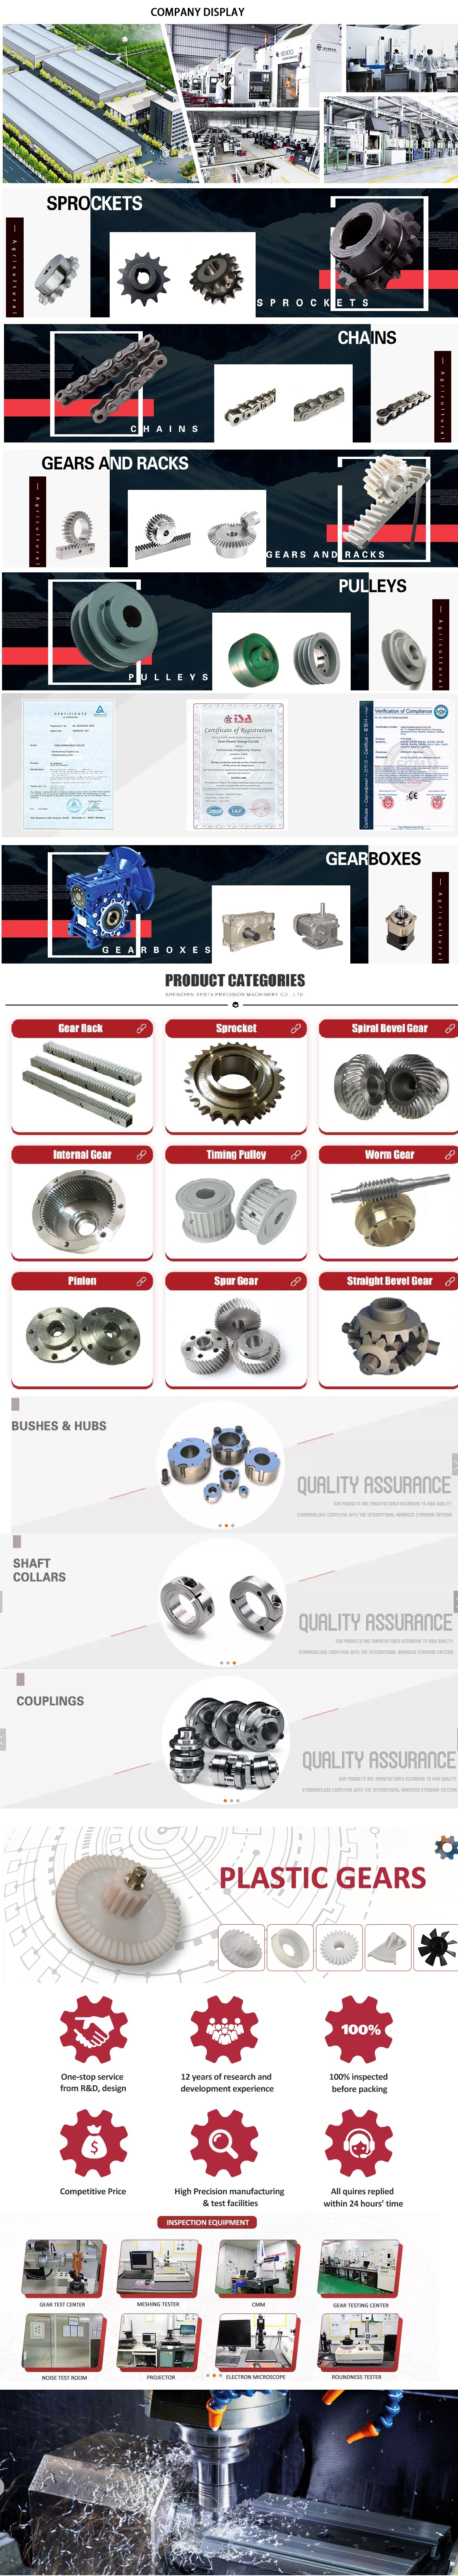 China  made in China - replacement parts -   woods bush hog gearbox   Bangkok Thailand   Siemens Beide Motor Strong Gear Box Drive Grease Lubrication System Single Phase Optional Yskj200 Animal Feed Flat Die Pellet Machine Mill with ce certificate top quality low price